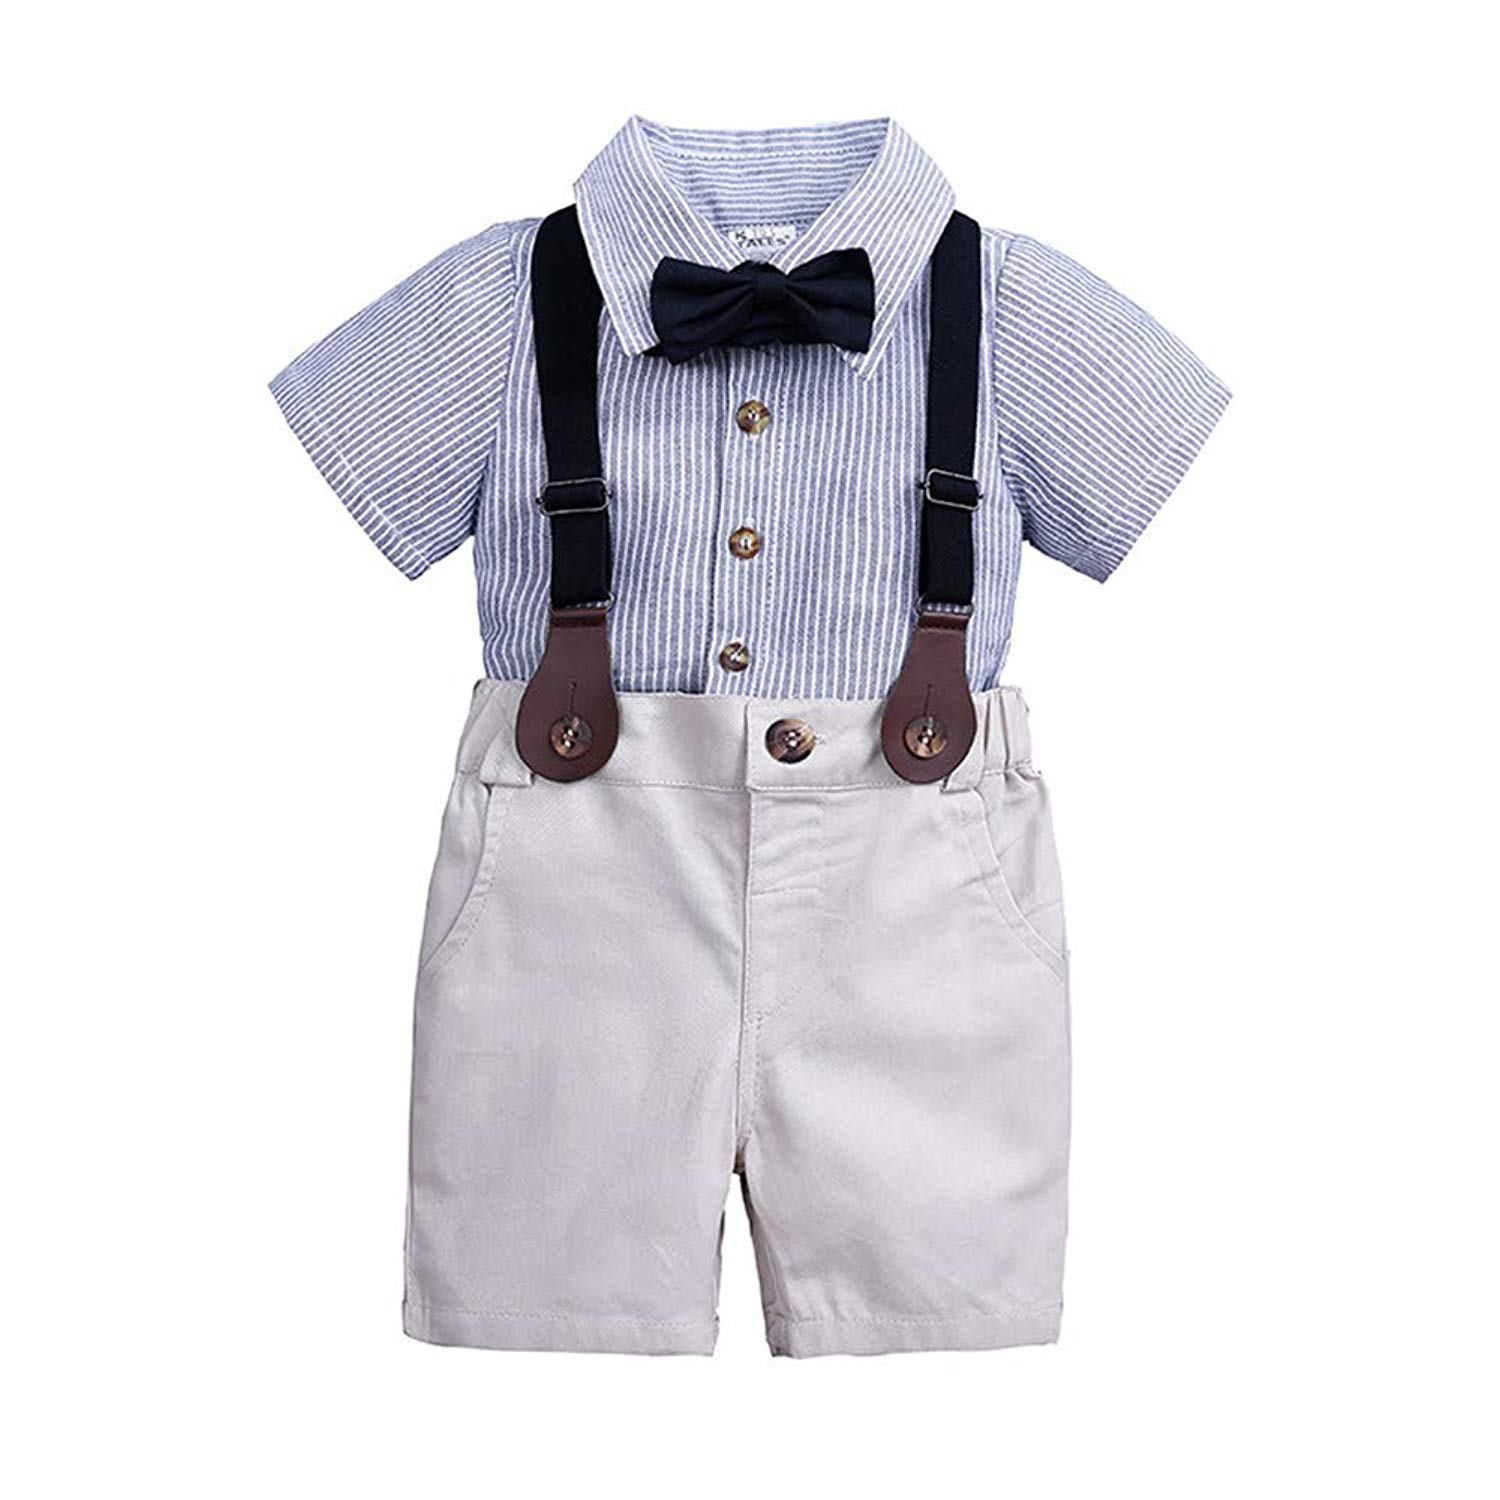 ad638bfb6ed1 Get Quotations · LOOLY Baby Boys Gentleman Outfits Suits Infant Striped  Shirt+Bib Pants+Bow Tie